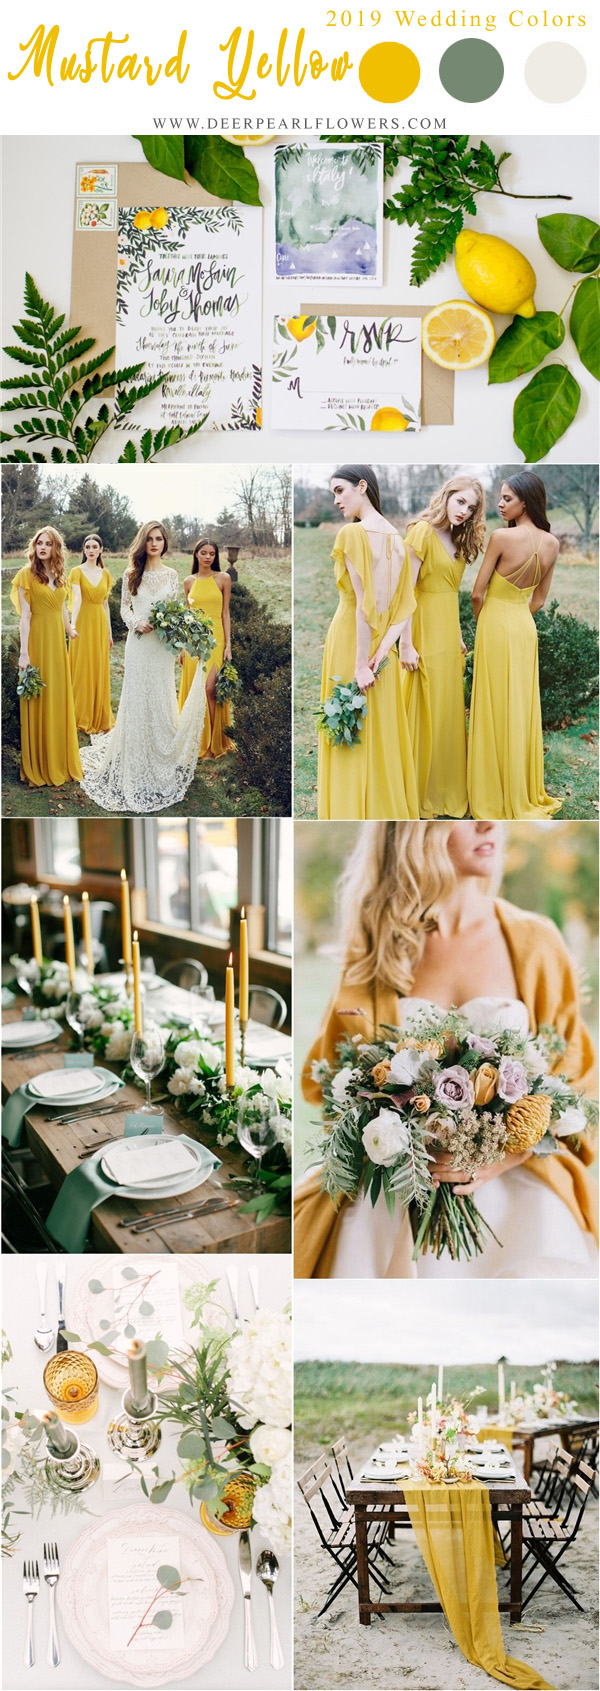 Top 10 Wedding Color Scheme Ideas For 2019 Trends Deer